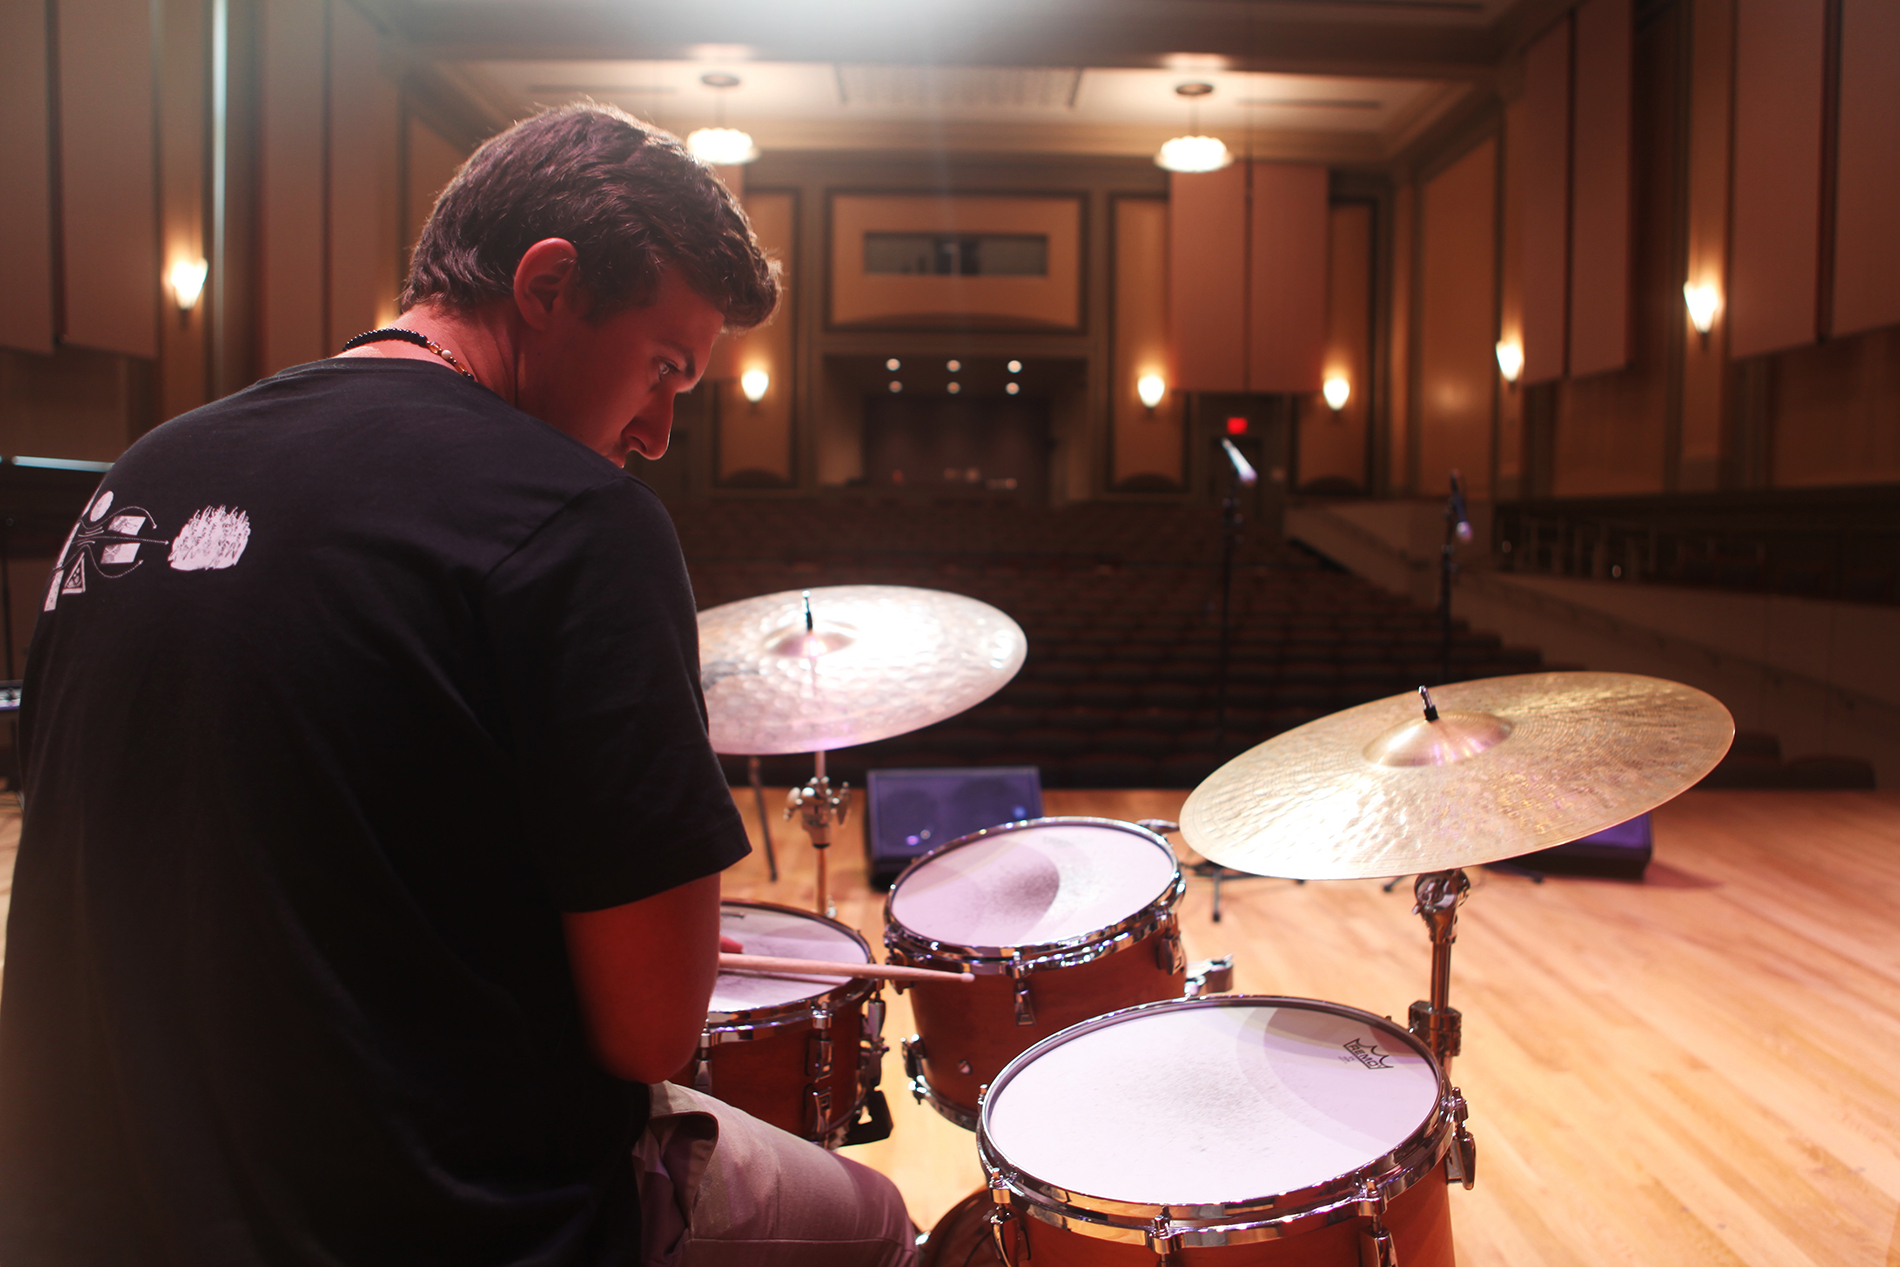 a young man plays the drums